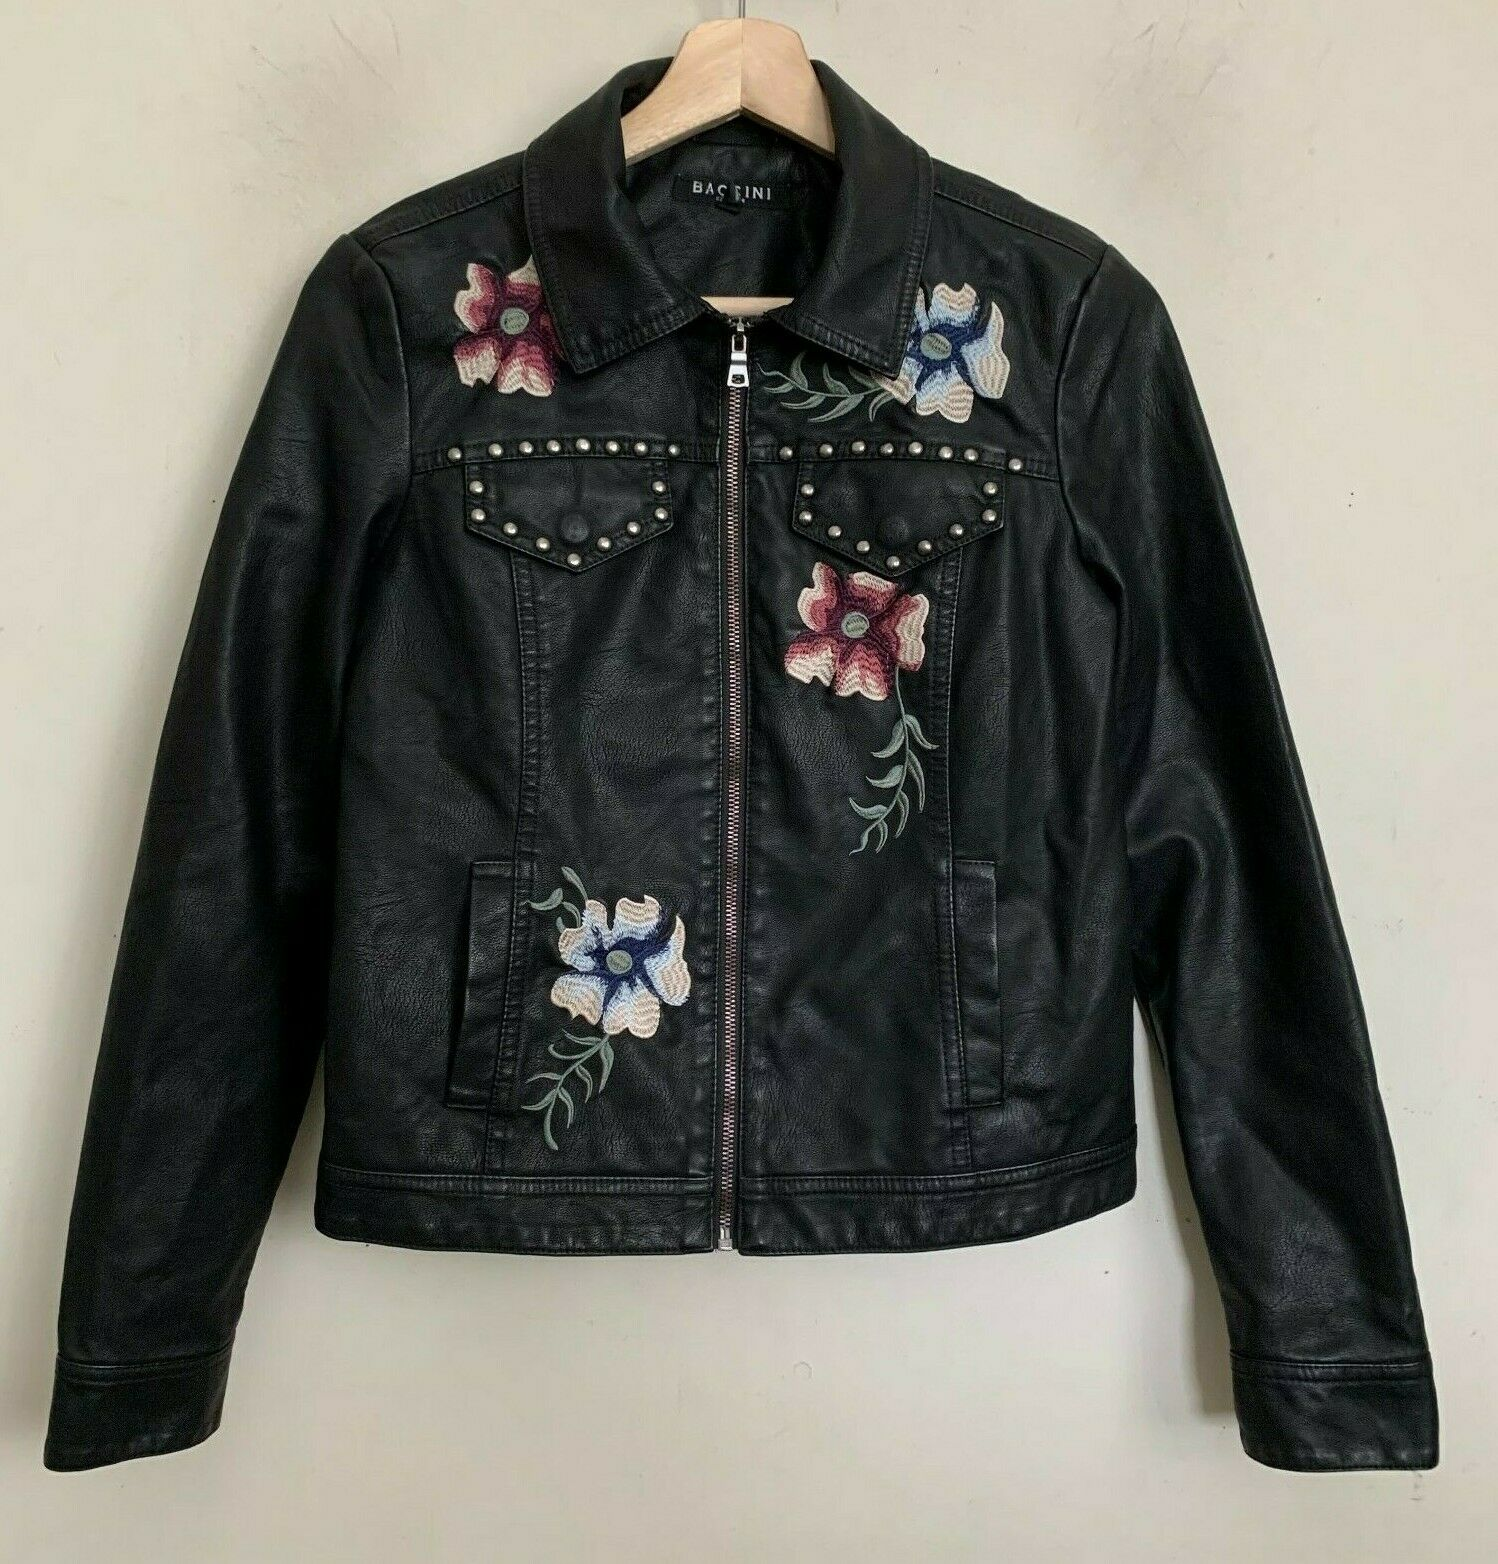 Baccini Jacket Black Faux Leather Embroidered Floral Zip Pockets Lined Size PS